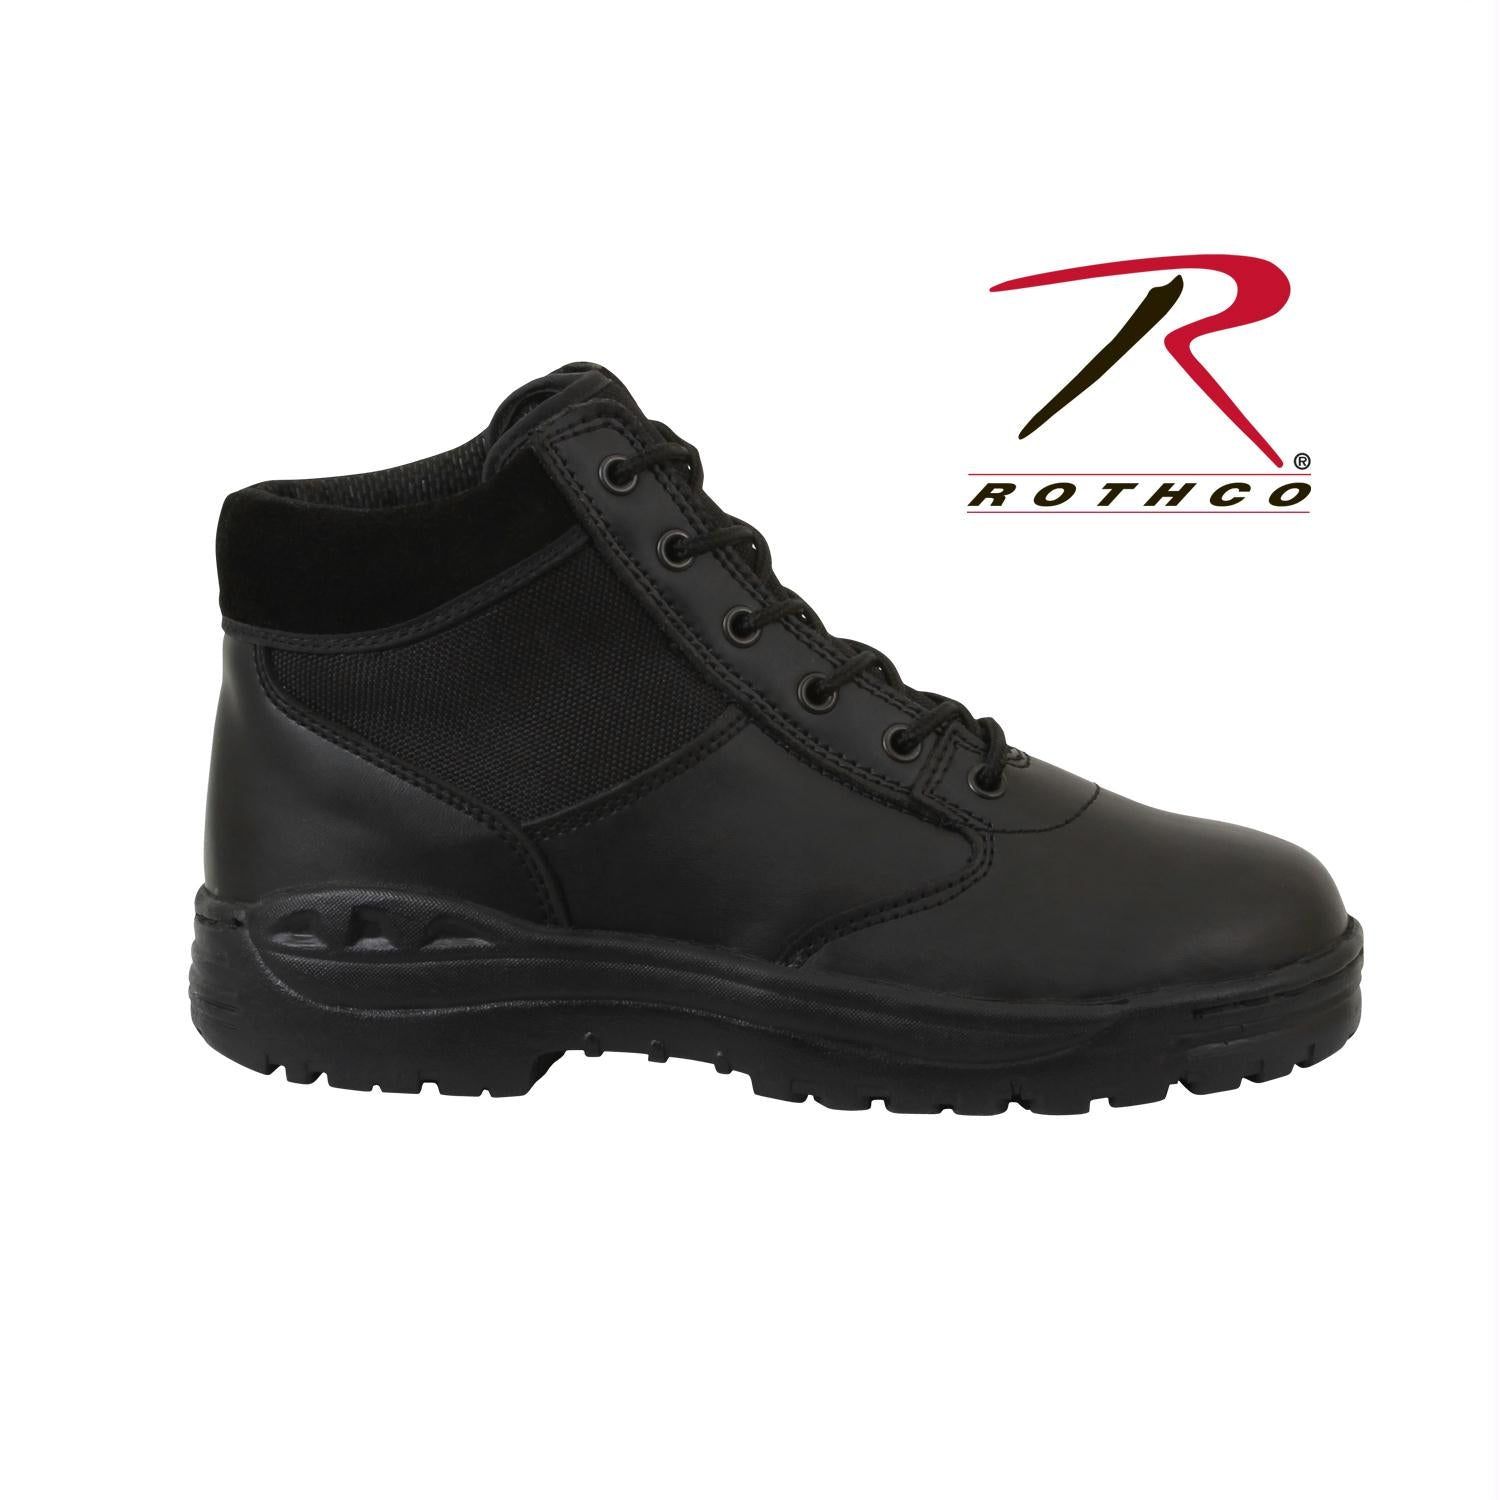 Rothco Forced Entry Security Boot / 6'' - 9.5